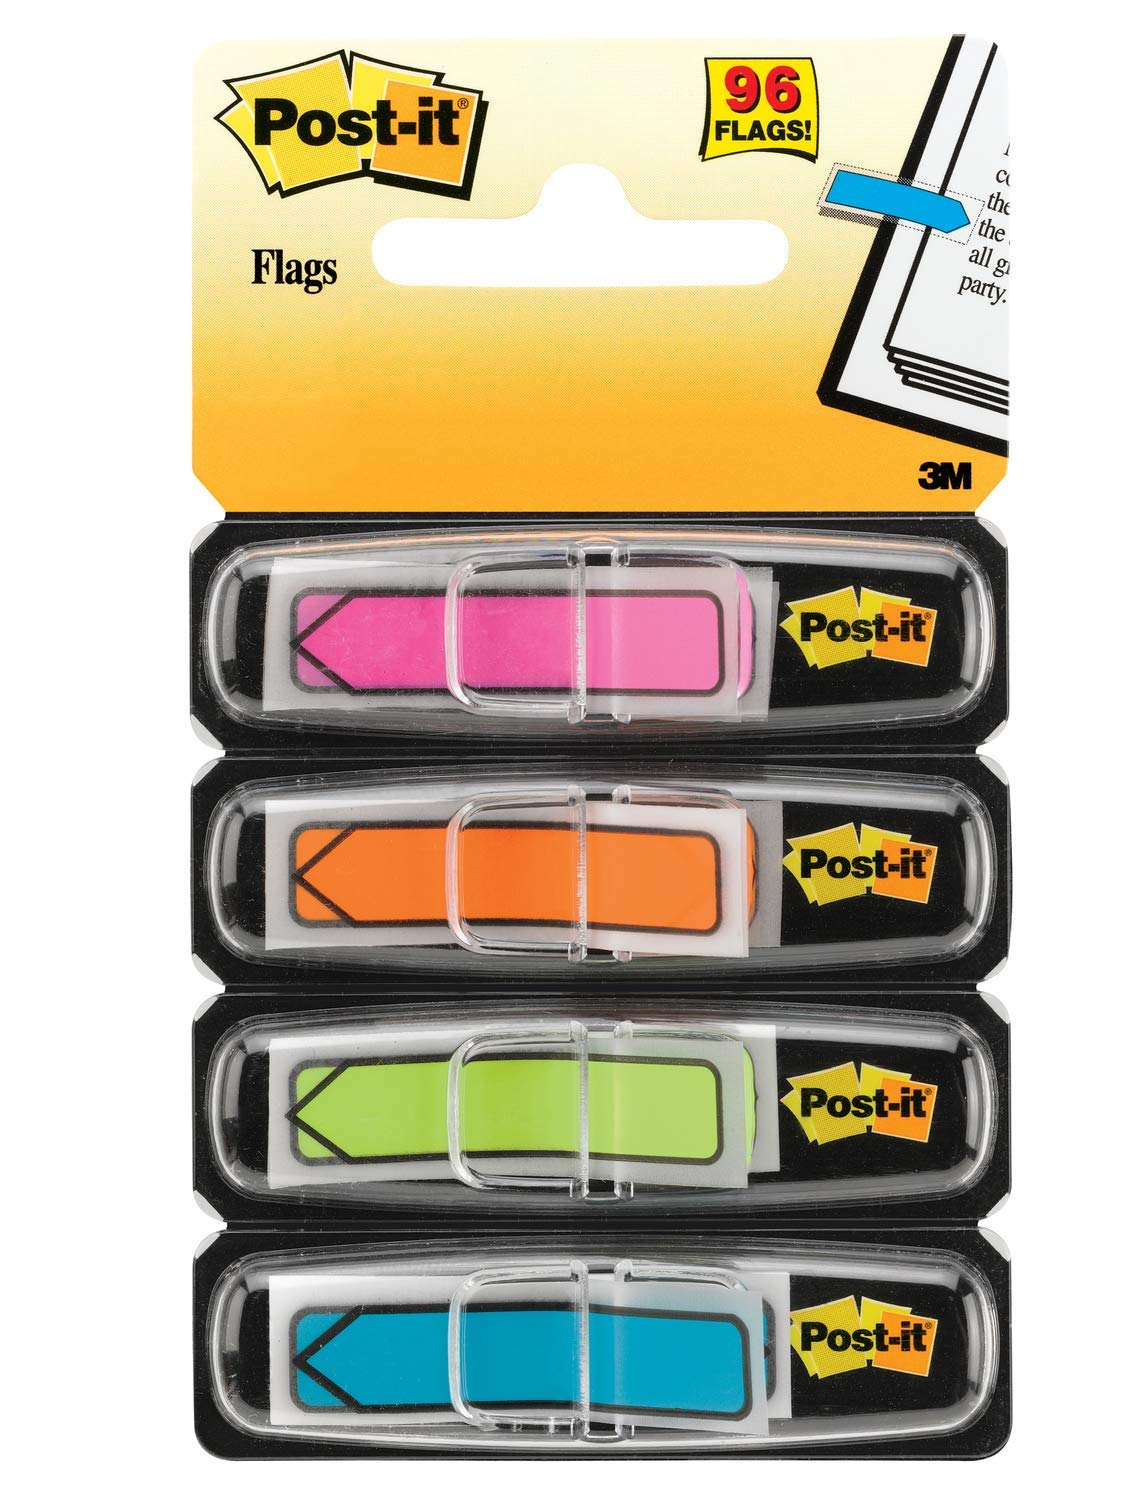 3M Office Products Arrow Flags, Assorted Bright Colors, 1/2-Inch Wide, 24/Dispenser, 4-Dispensers/Pack (684-ARR4)